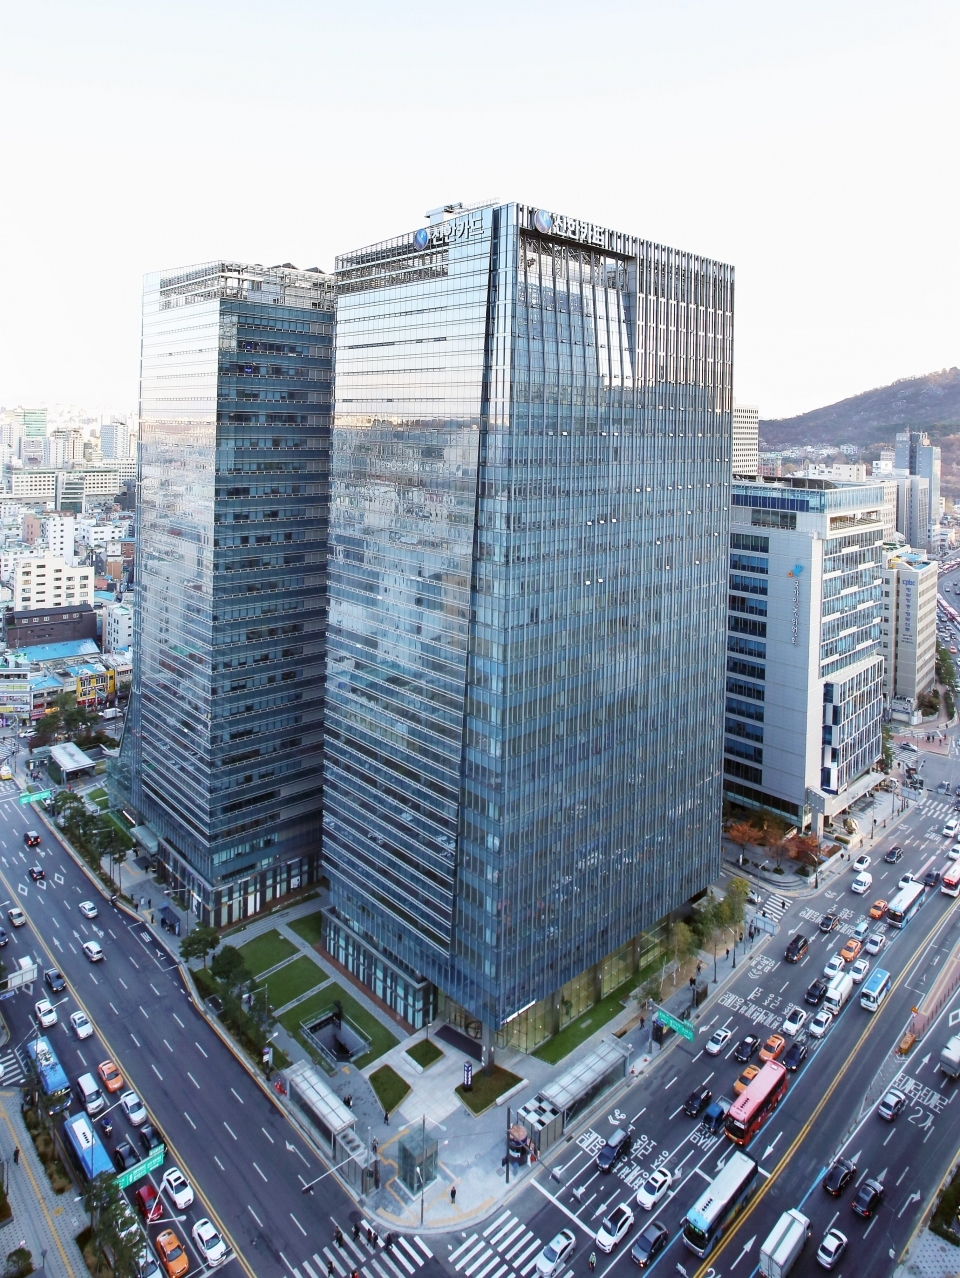 An aerial view of Pine Avenue A, an office building that Shinhan Card uses as its headquarters. Shinhan Card acquired the building in the third quarter of 2020 in a deal that recorded the highest unit price of office buildings in history. (Shinhan Card)